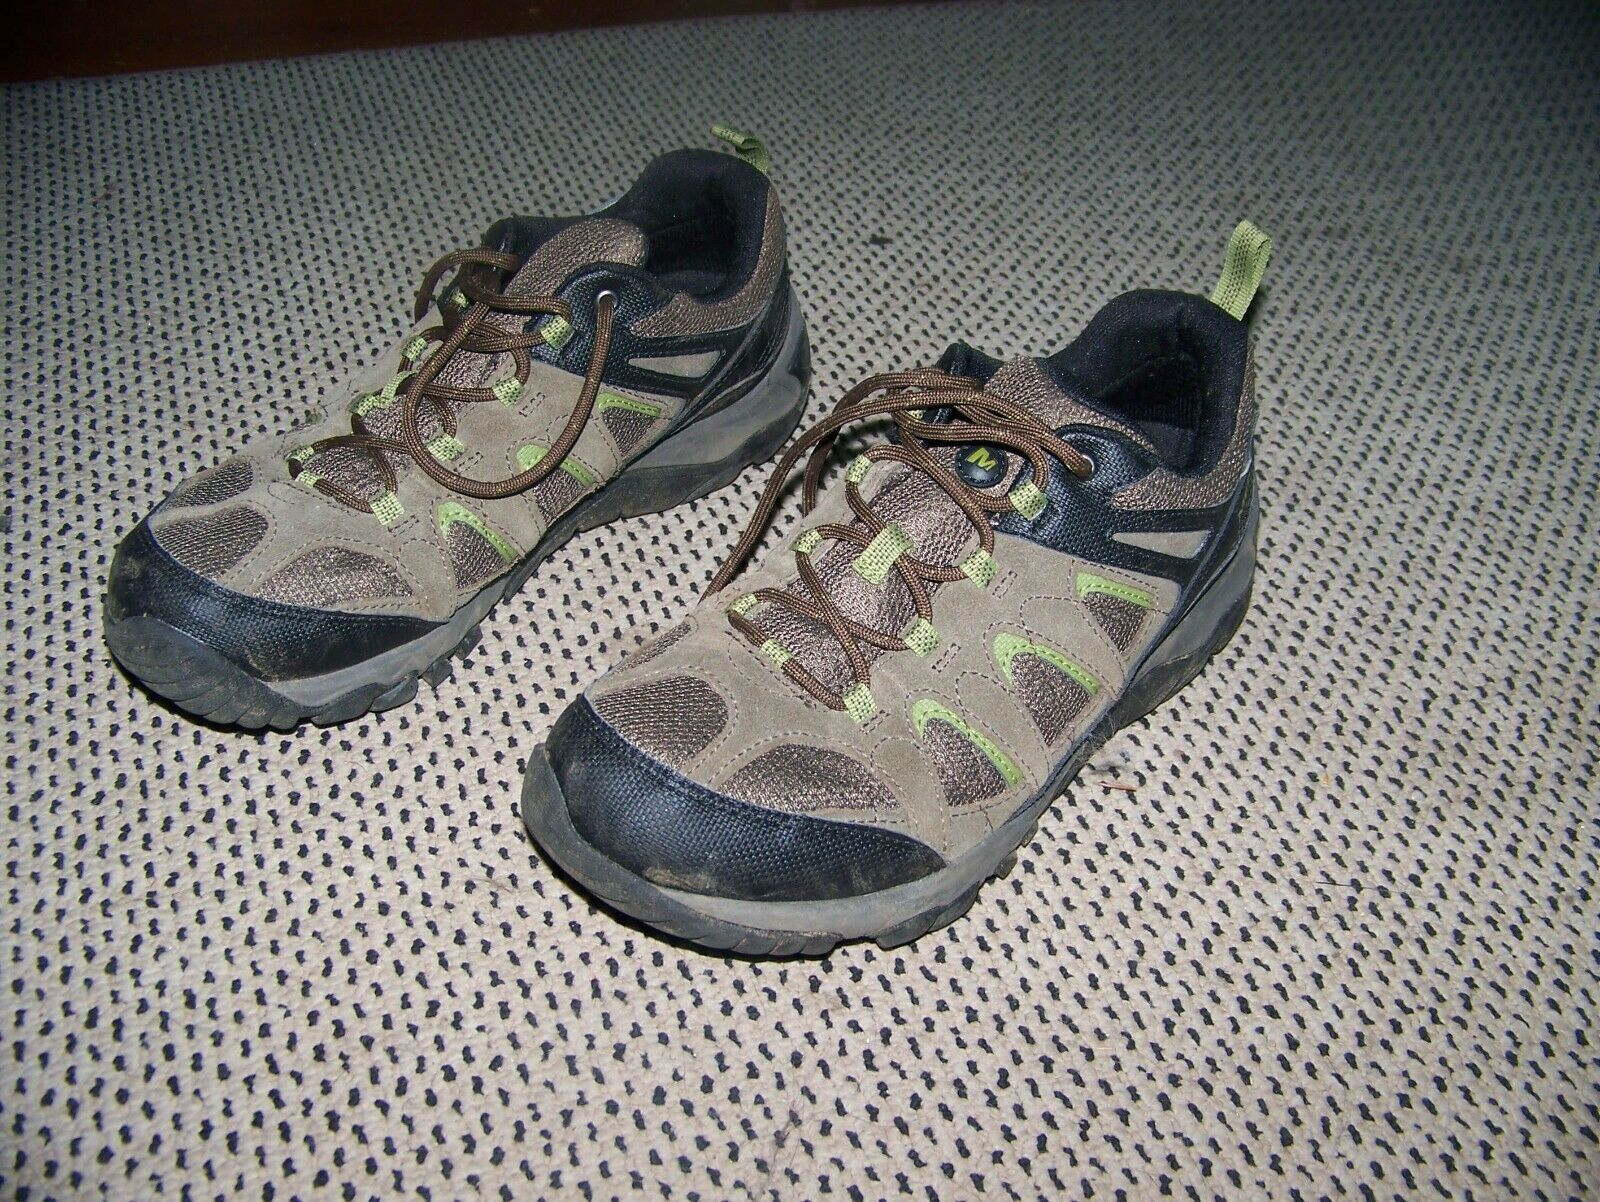 Merrell Outmost Hiking shoes Men's 8.5 used Once EUC   best-selling